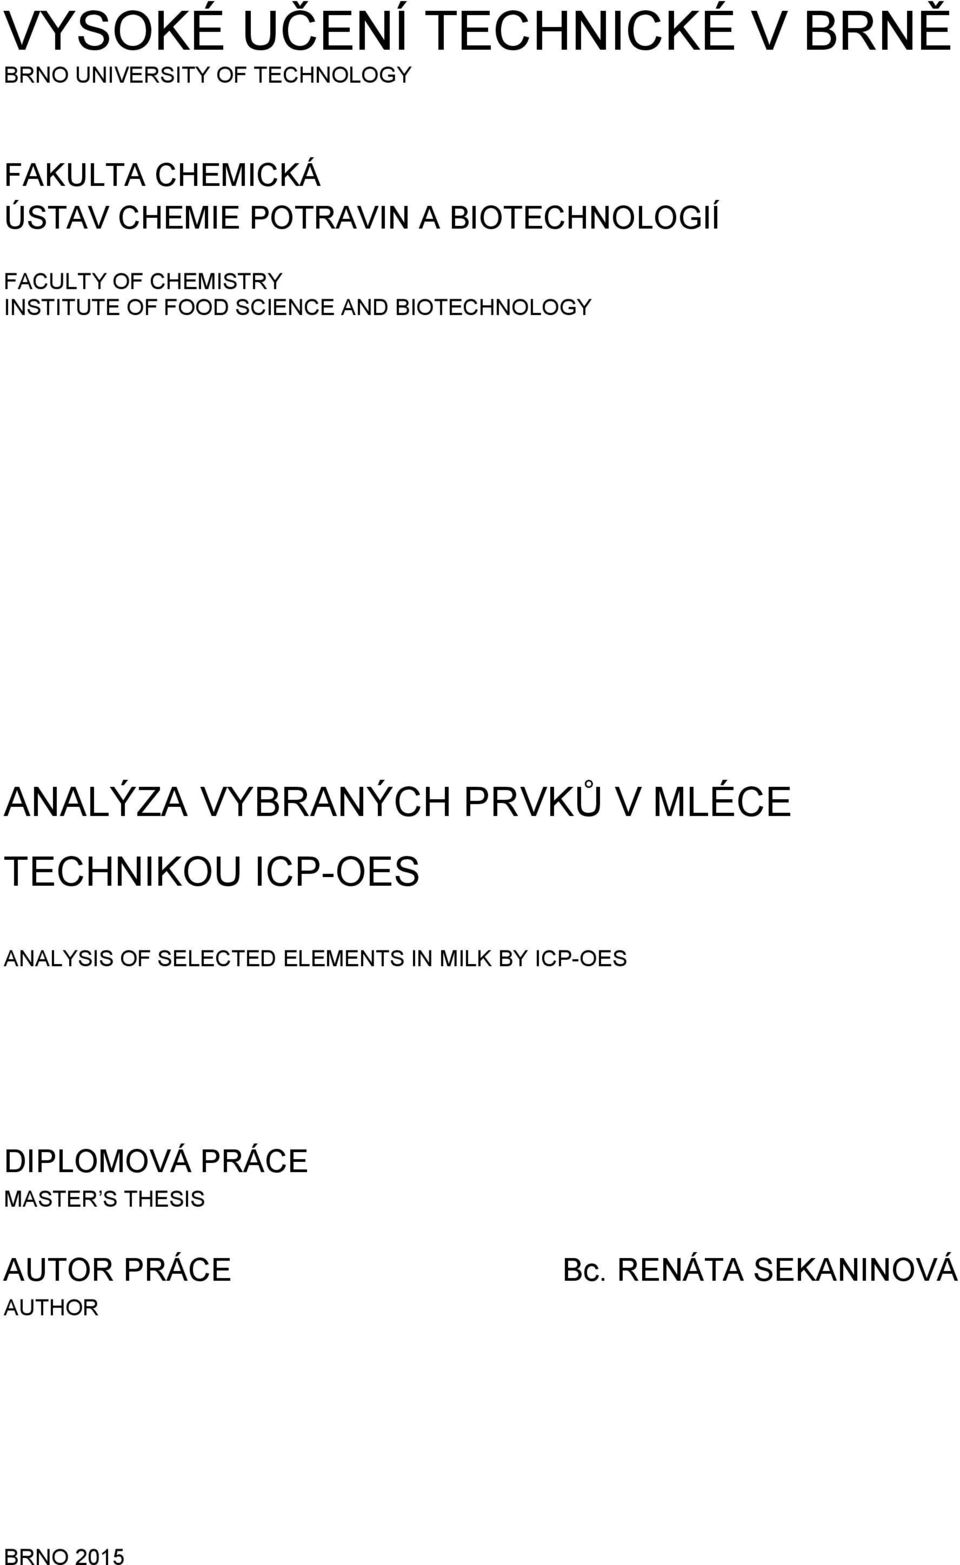 ANALÝZA VYBRANÝCH PRVKŮ V MLÉCE TECHNIKOU ICP-OES ANALYSIS OF SELECTED ELEMENTS IN MILK BY